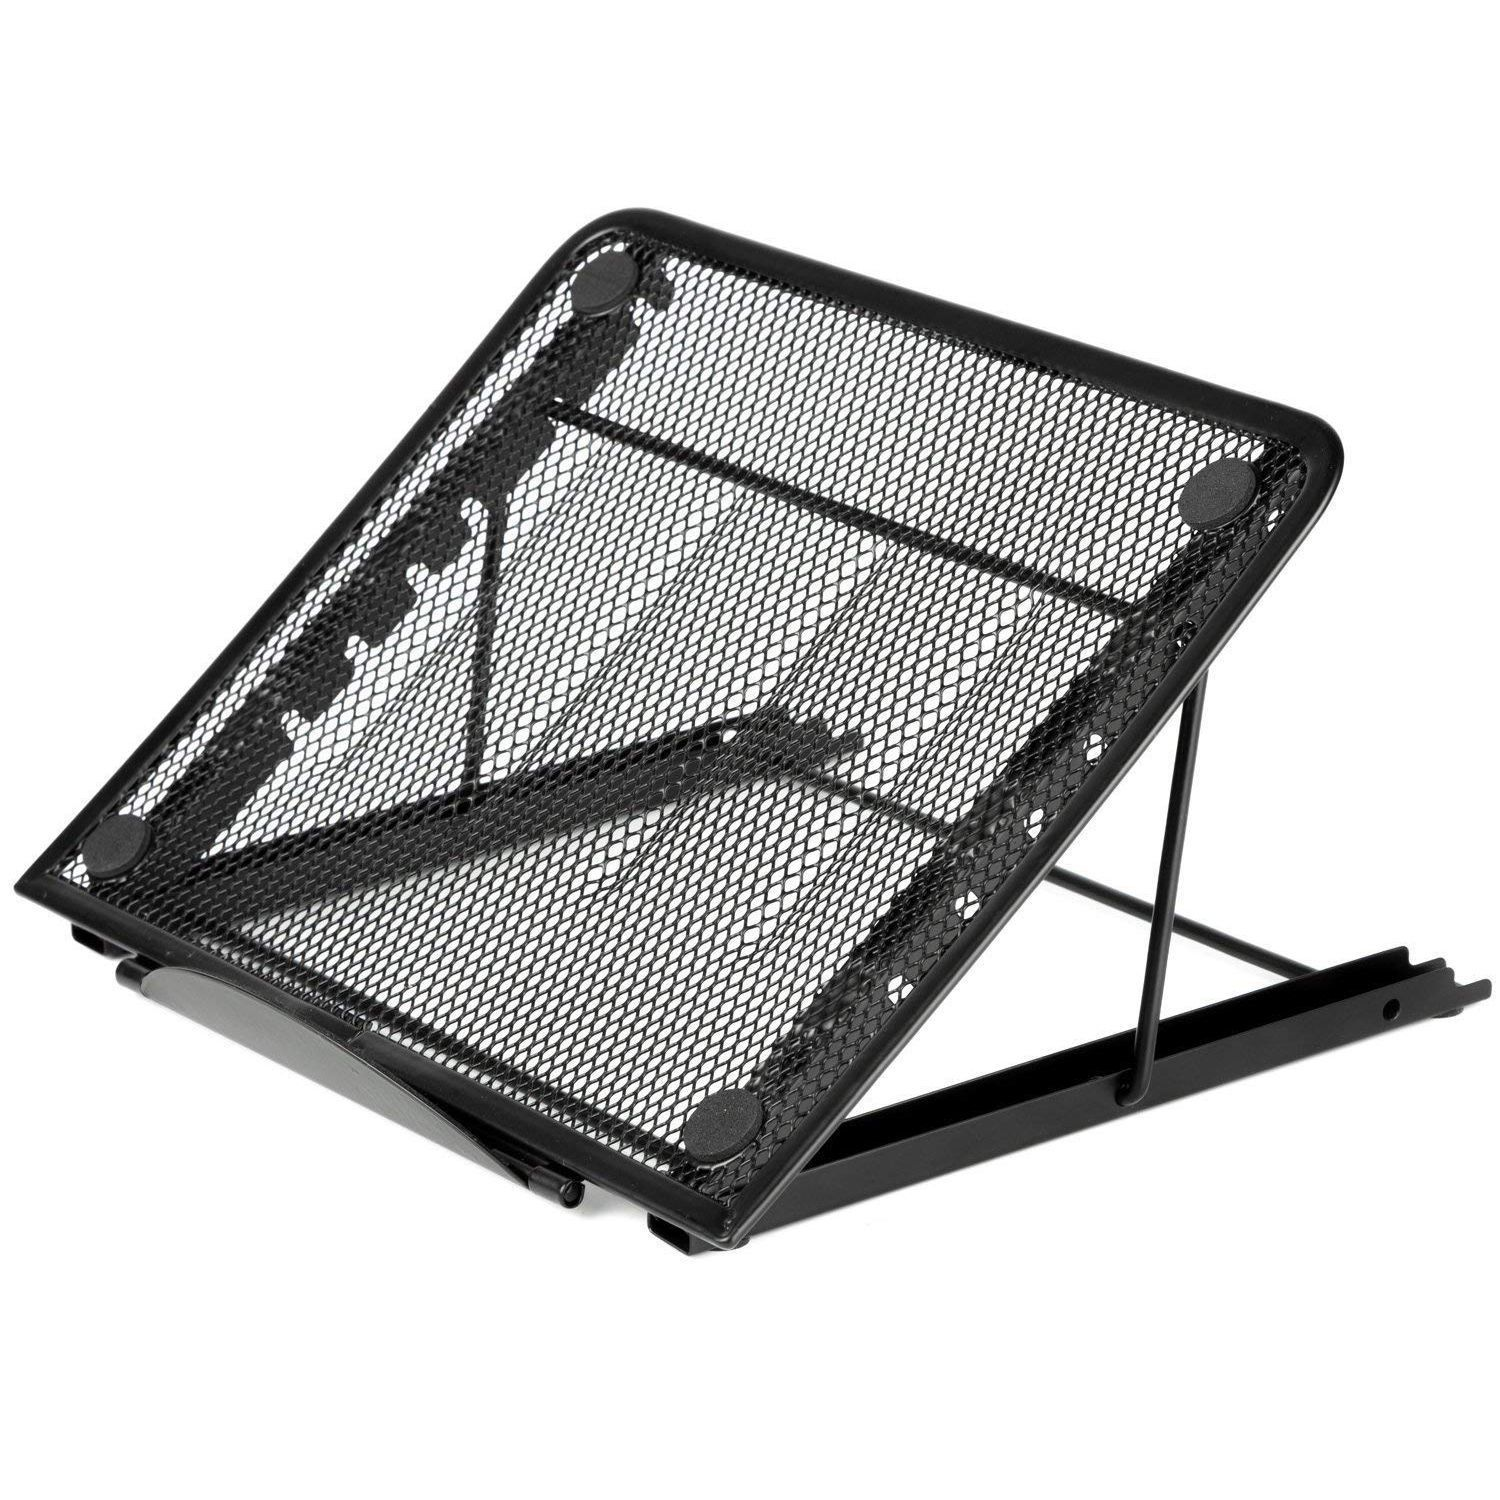 Mesh Ventilated Adjustable Laptop Stand For Laptop Notebook